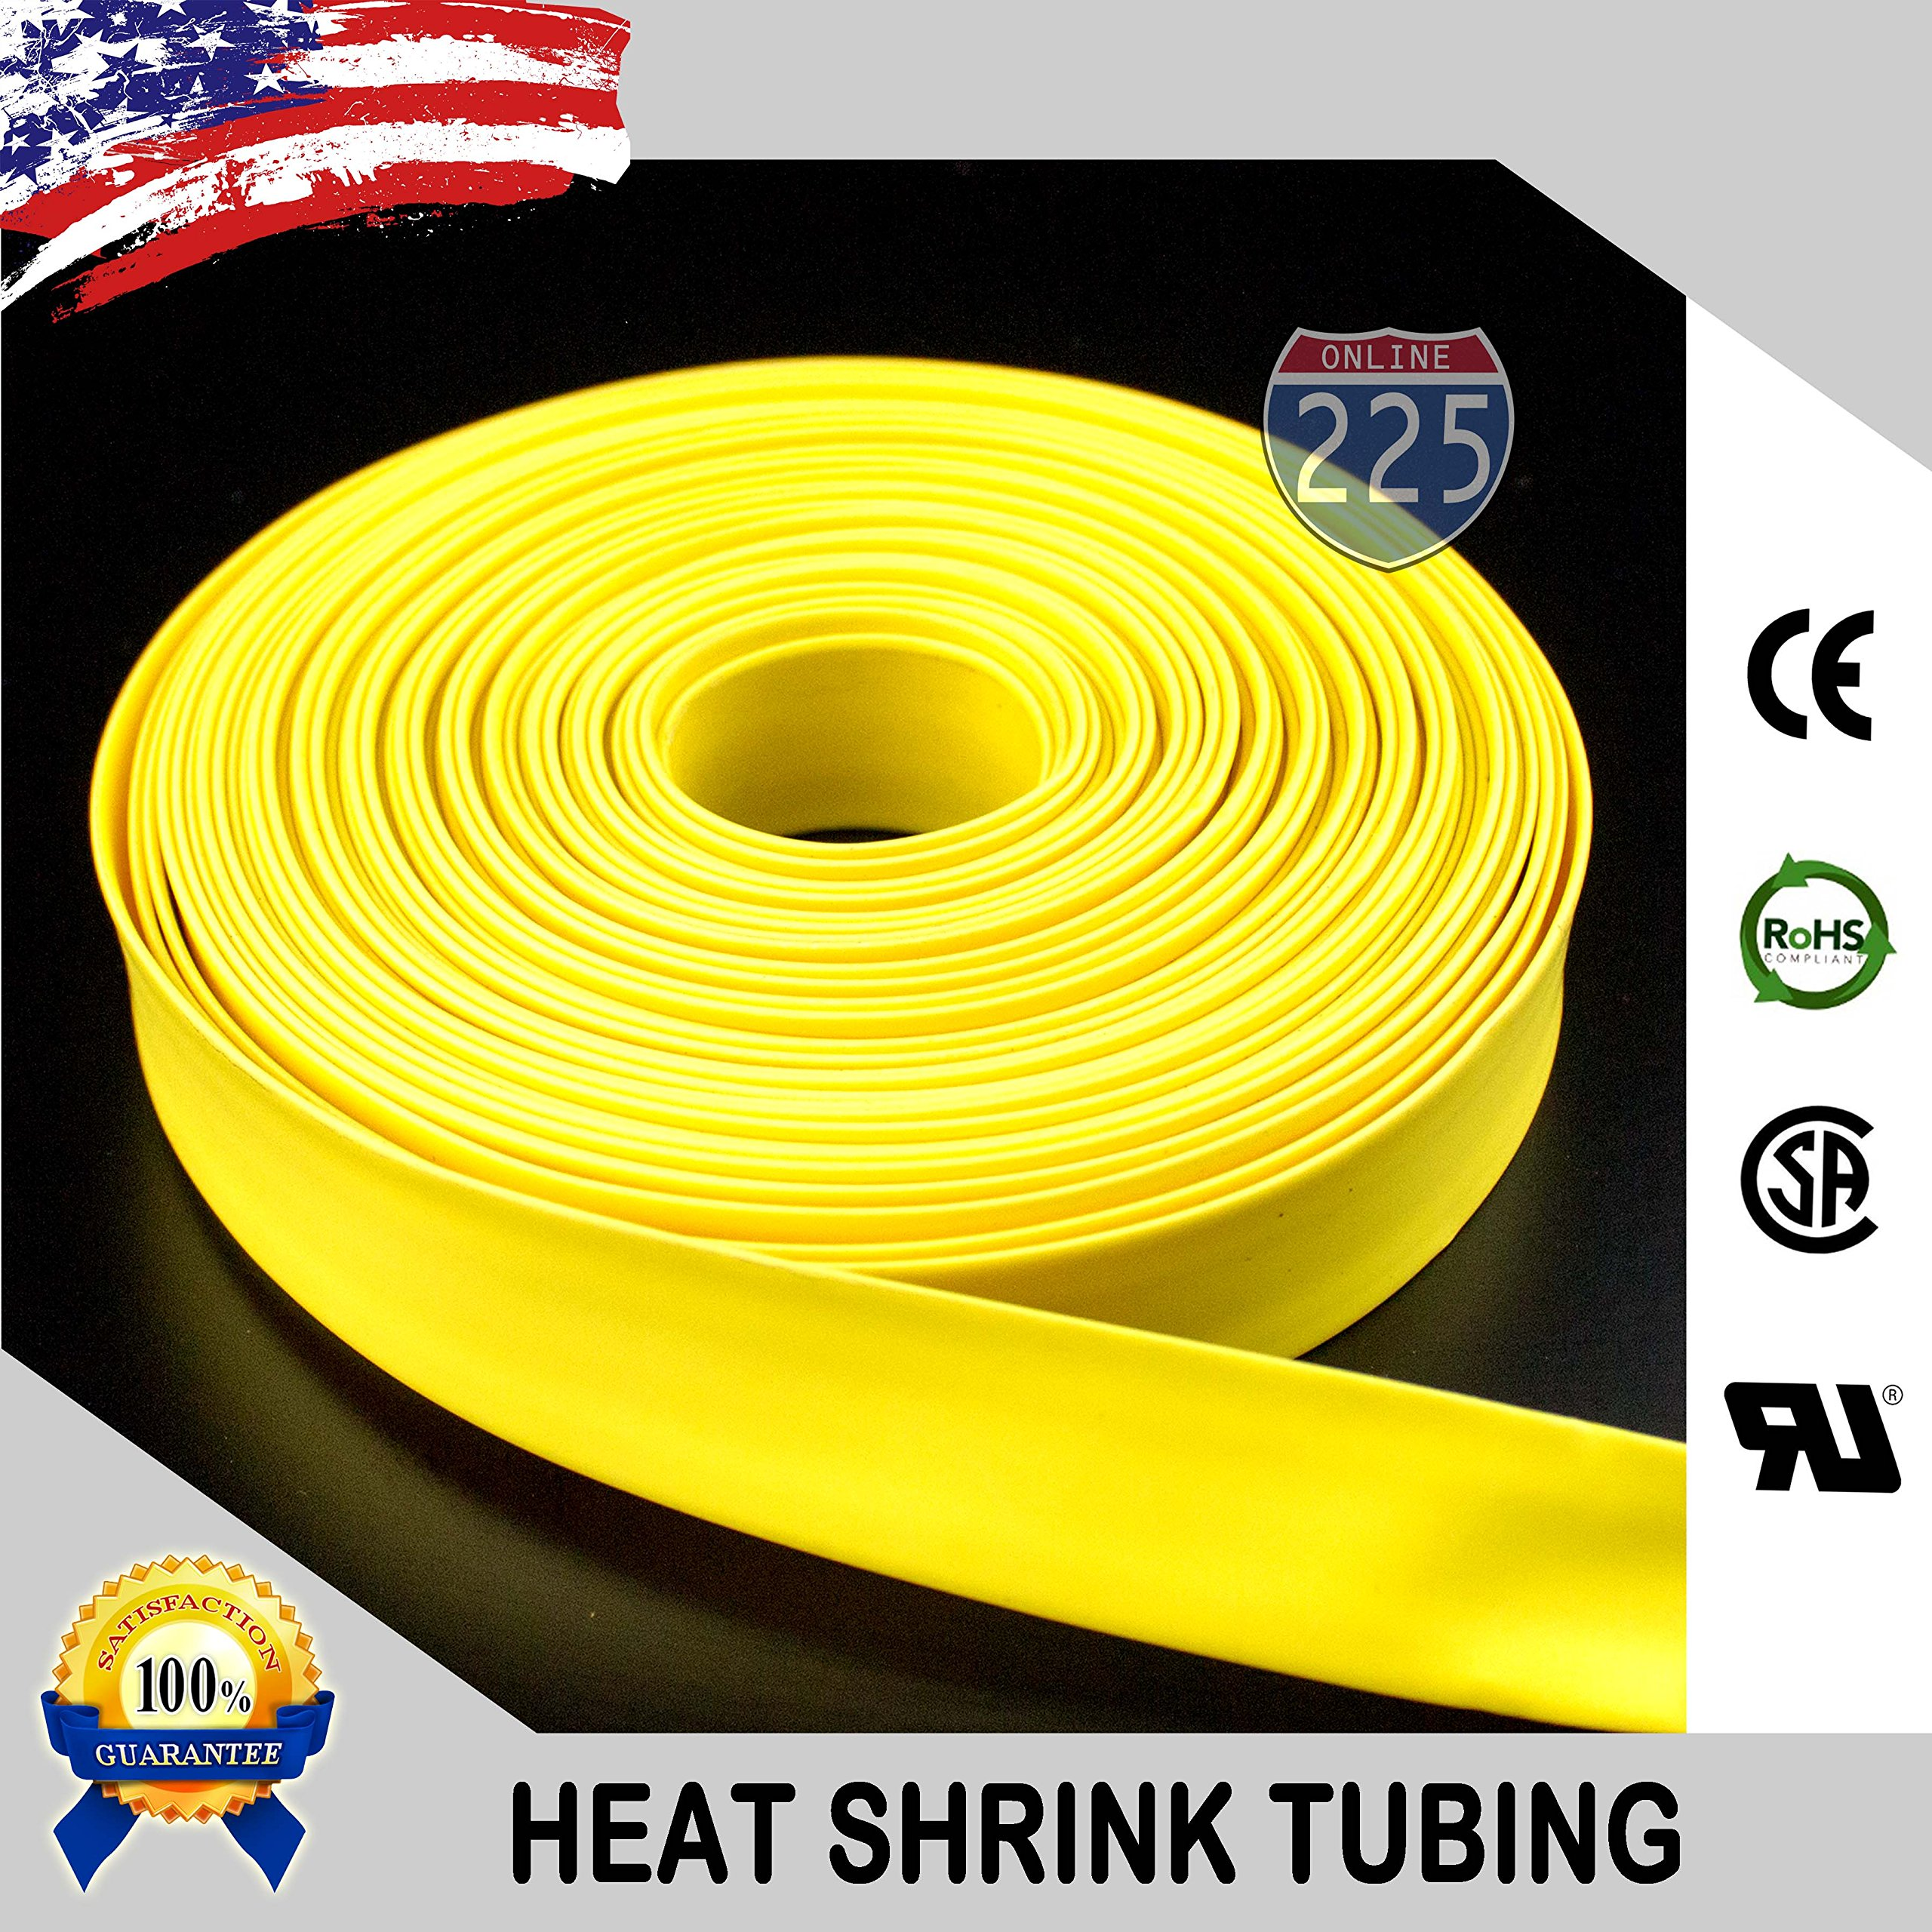 100 FT 1'' 25mm Polyolefin Yellow Heat Shrink Tubing 2:1 Ratio